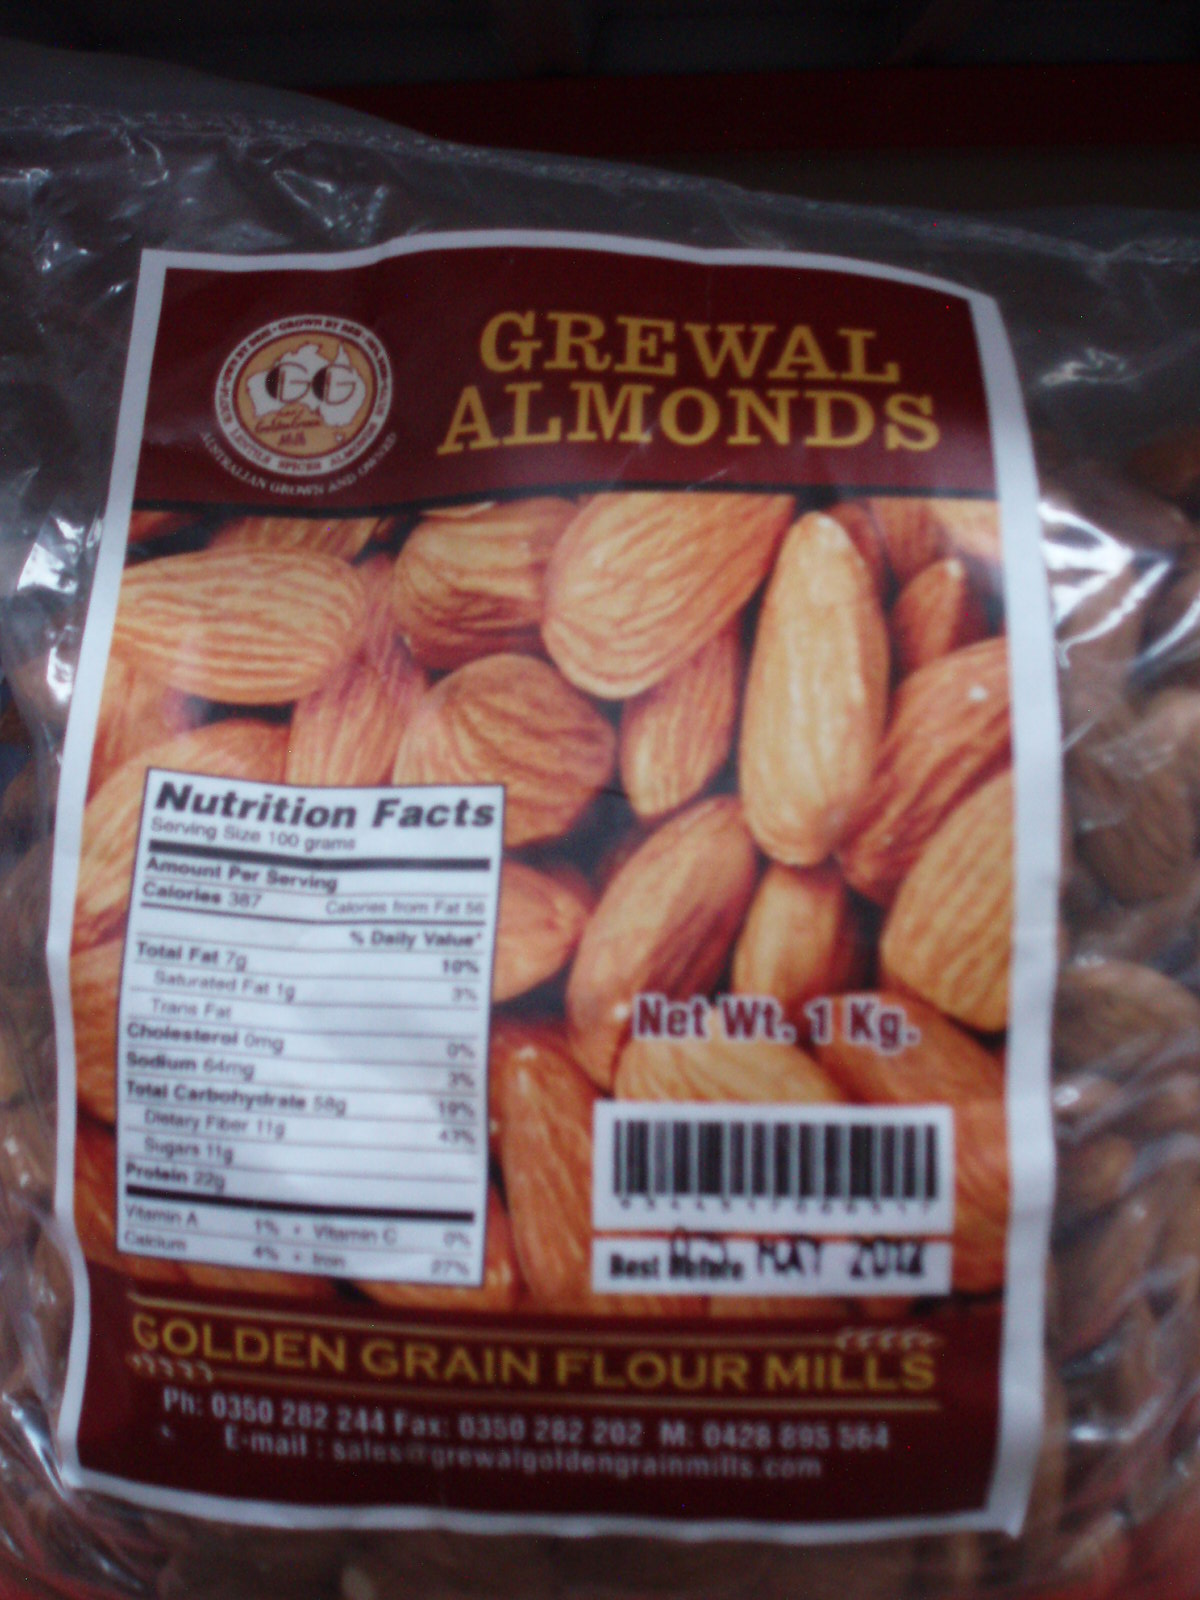 Almonds-Grewal-500 gm